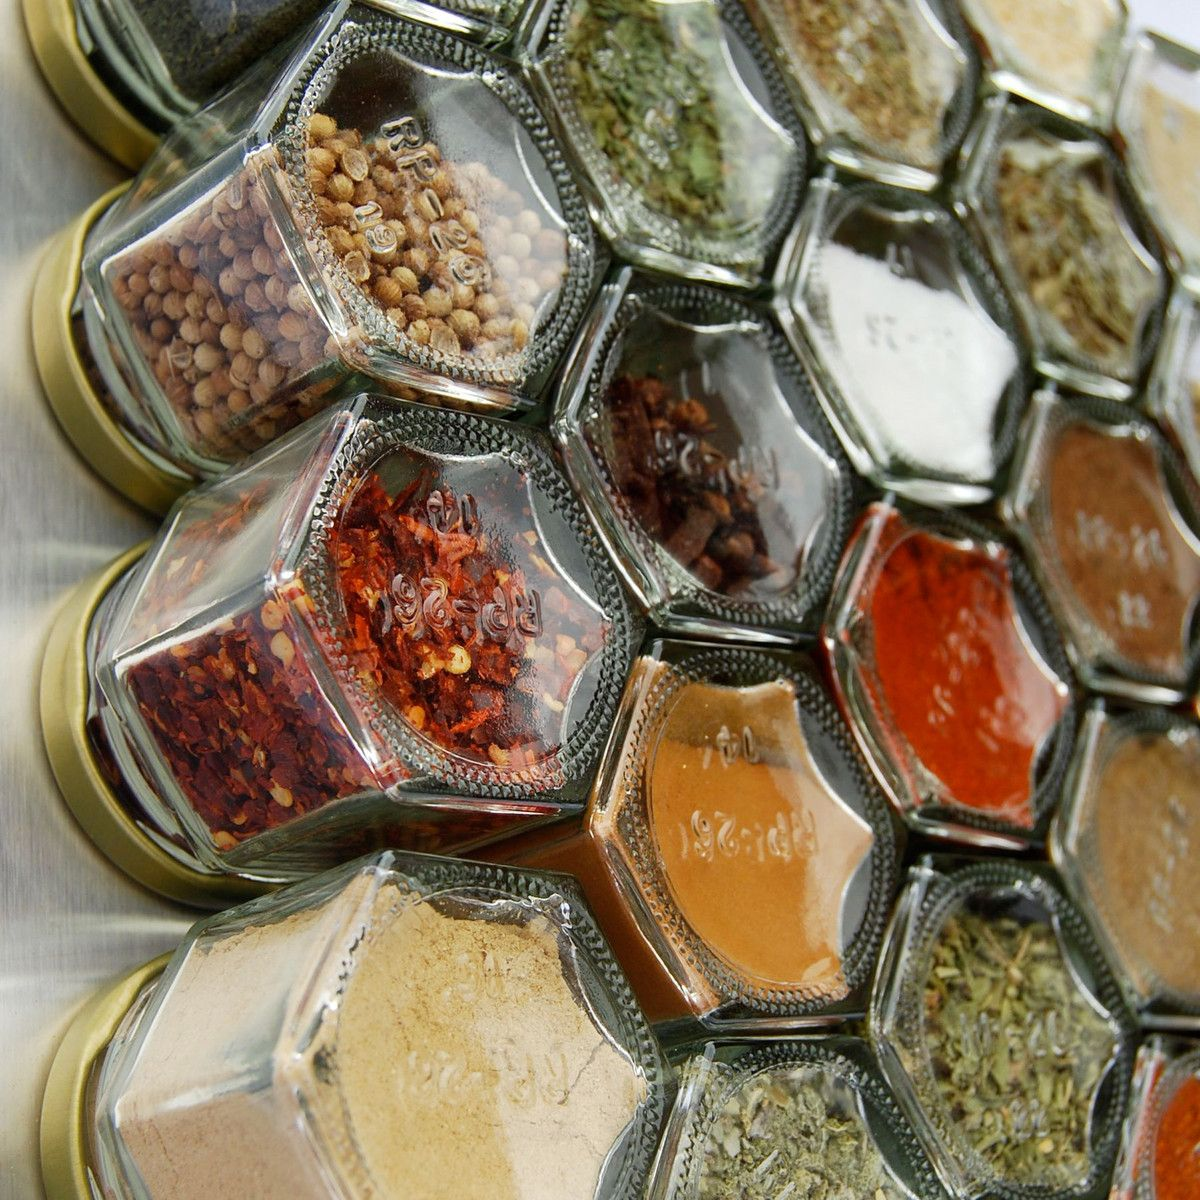 hexagonal spice containers that come loaded with